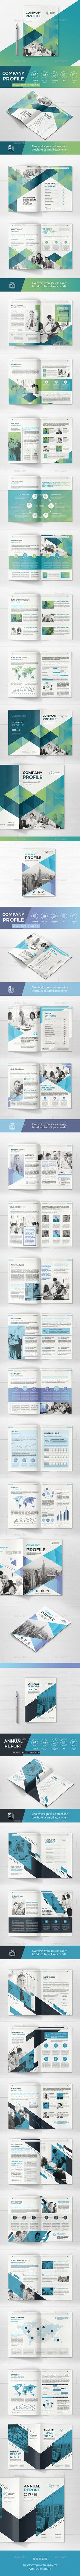 Bundle Company Profile This brochure can serve multiple purposes. It works great as a corporate identity brochure – for presenting your business, services, newest cases and more. Or use it to present a specific product. Or something completely different.